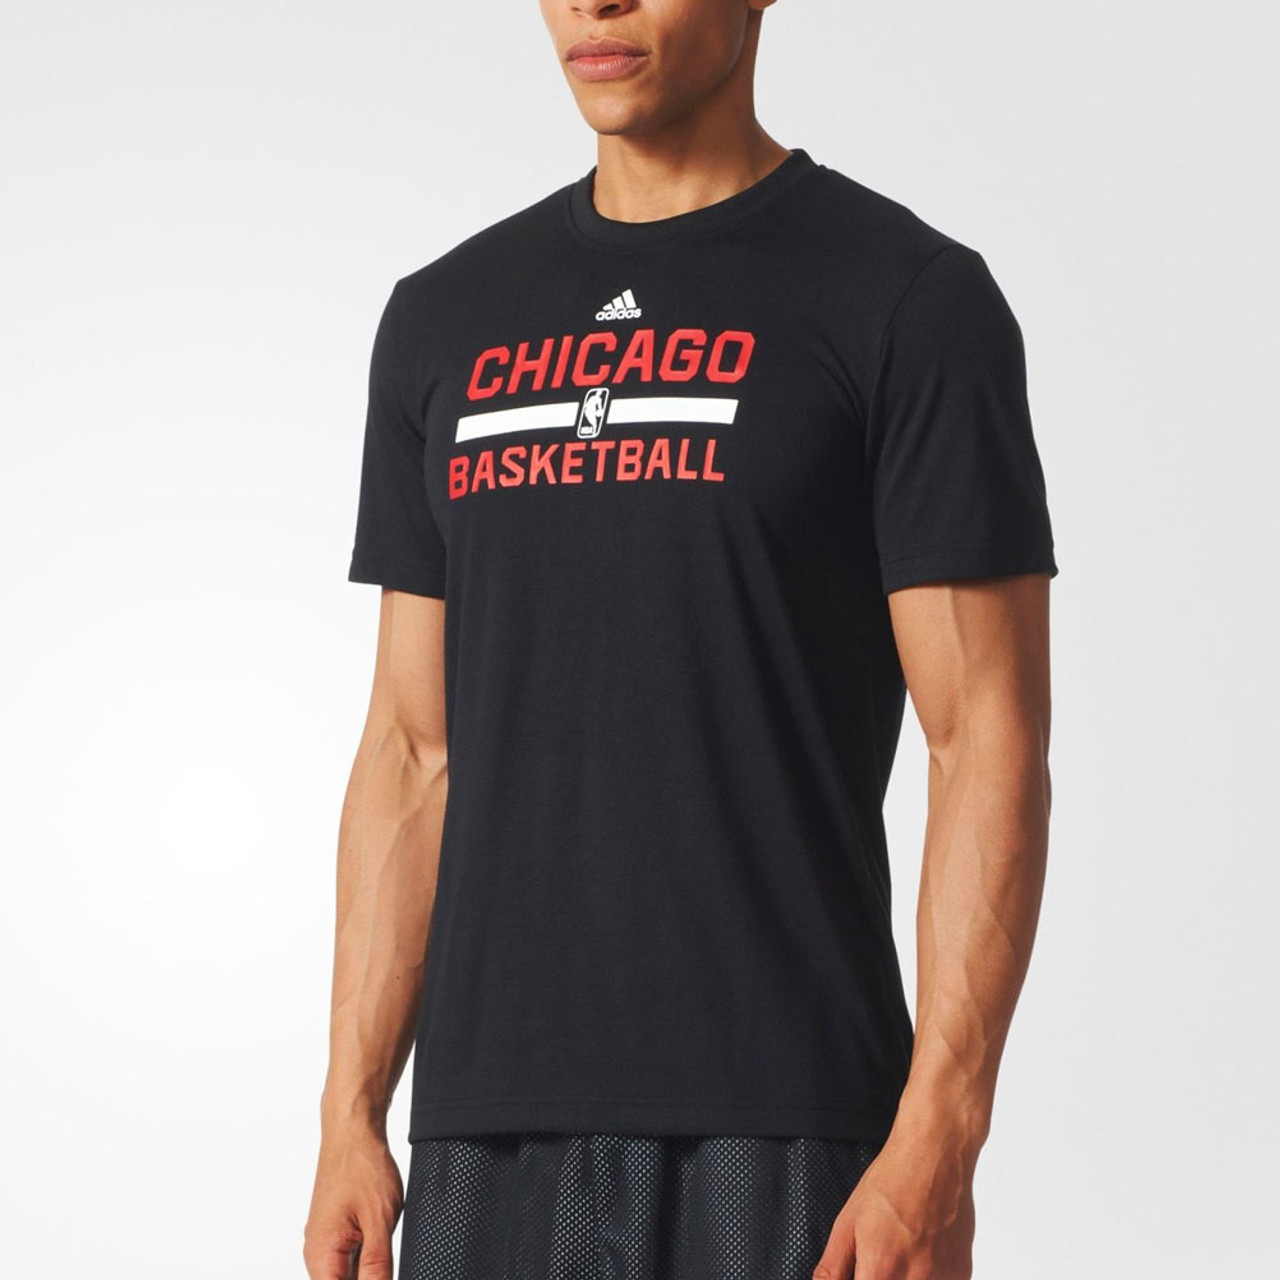 Hoops Chicago Basketball Winter Adidas Game Bulls T Shirtblack WH9EID2